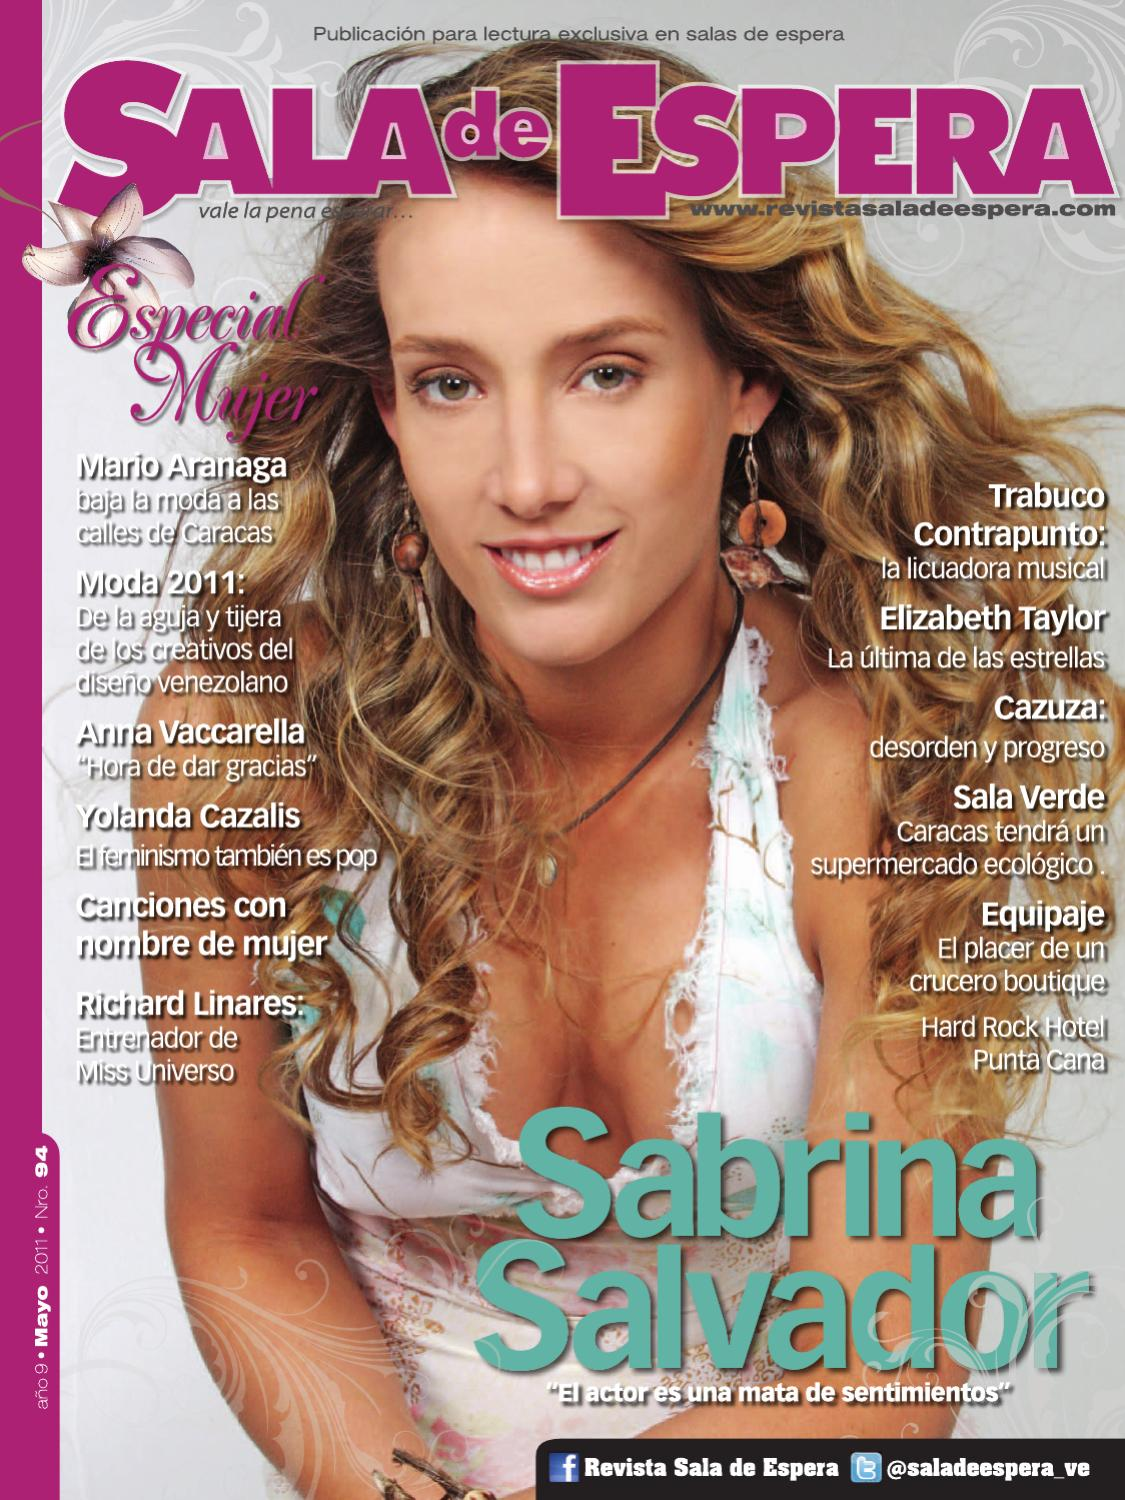 sala consilina black dating site Find the perfect sala consilina stock photo huge collection, amazing choice, 100+ million high quality, affordable rf and rm images no need to register, buy now.